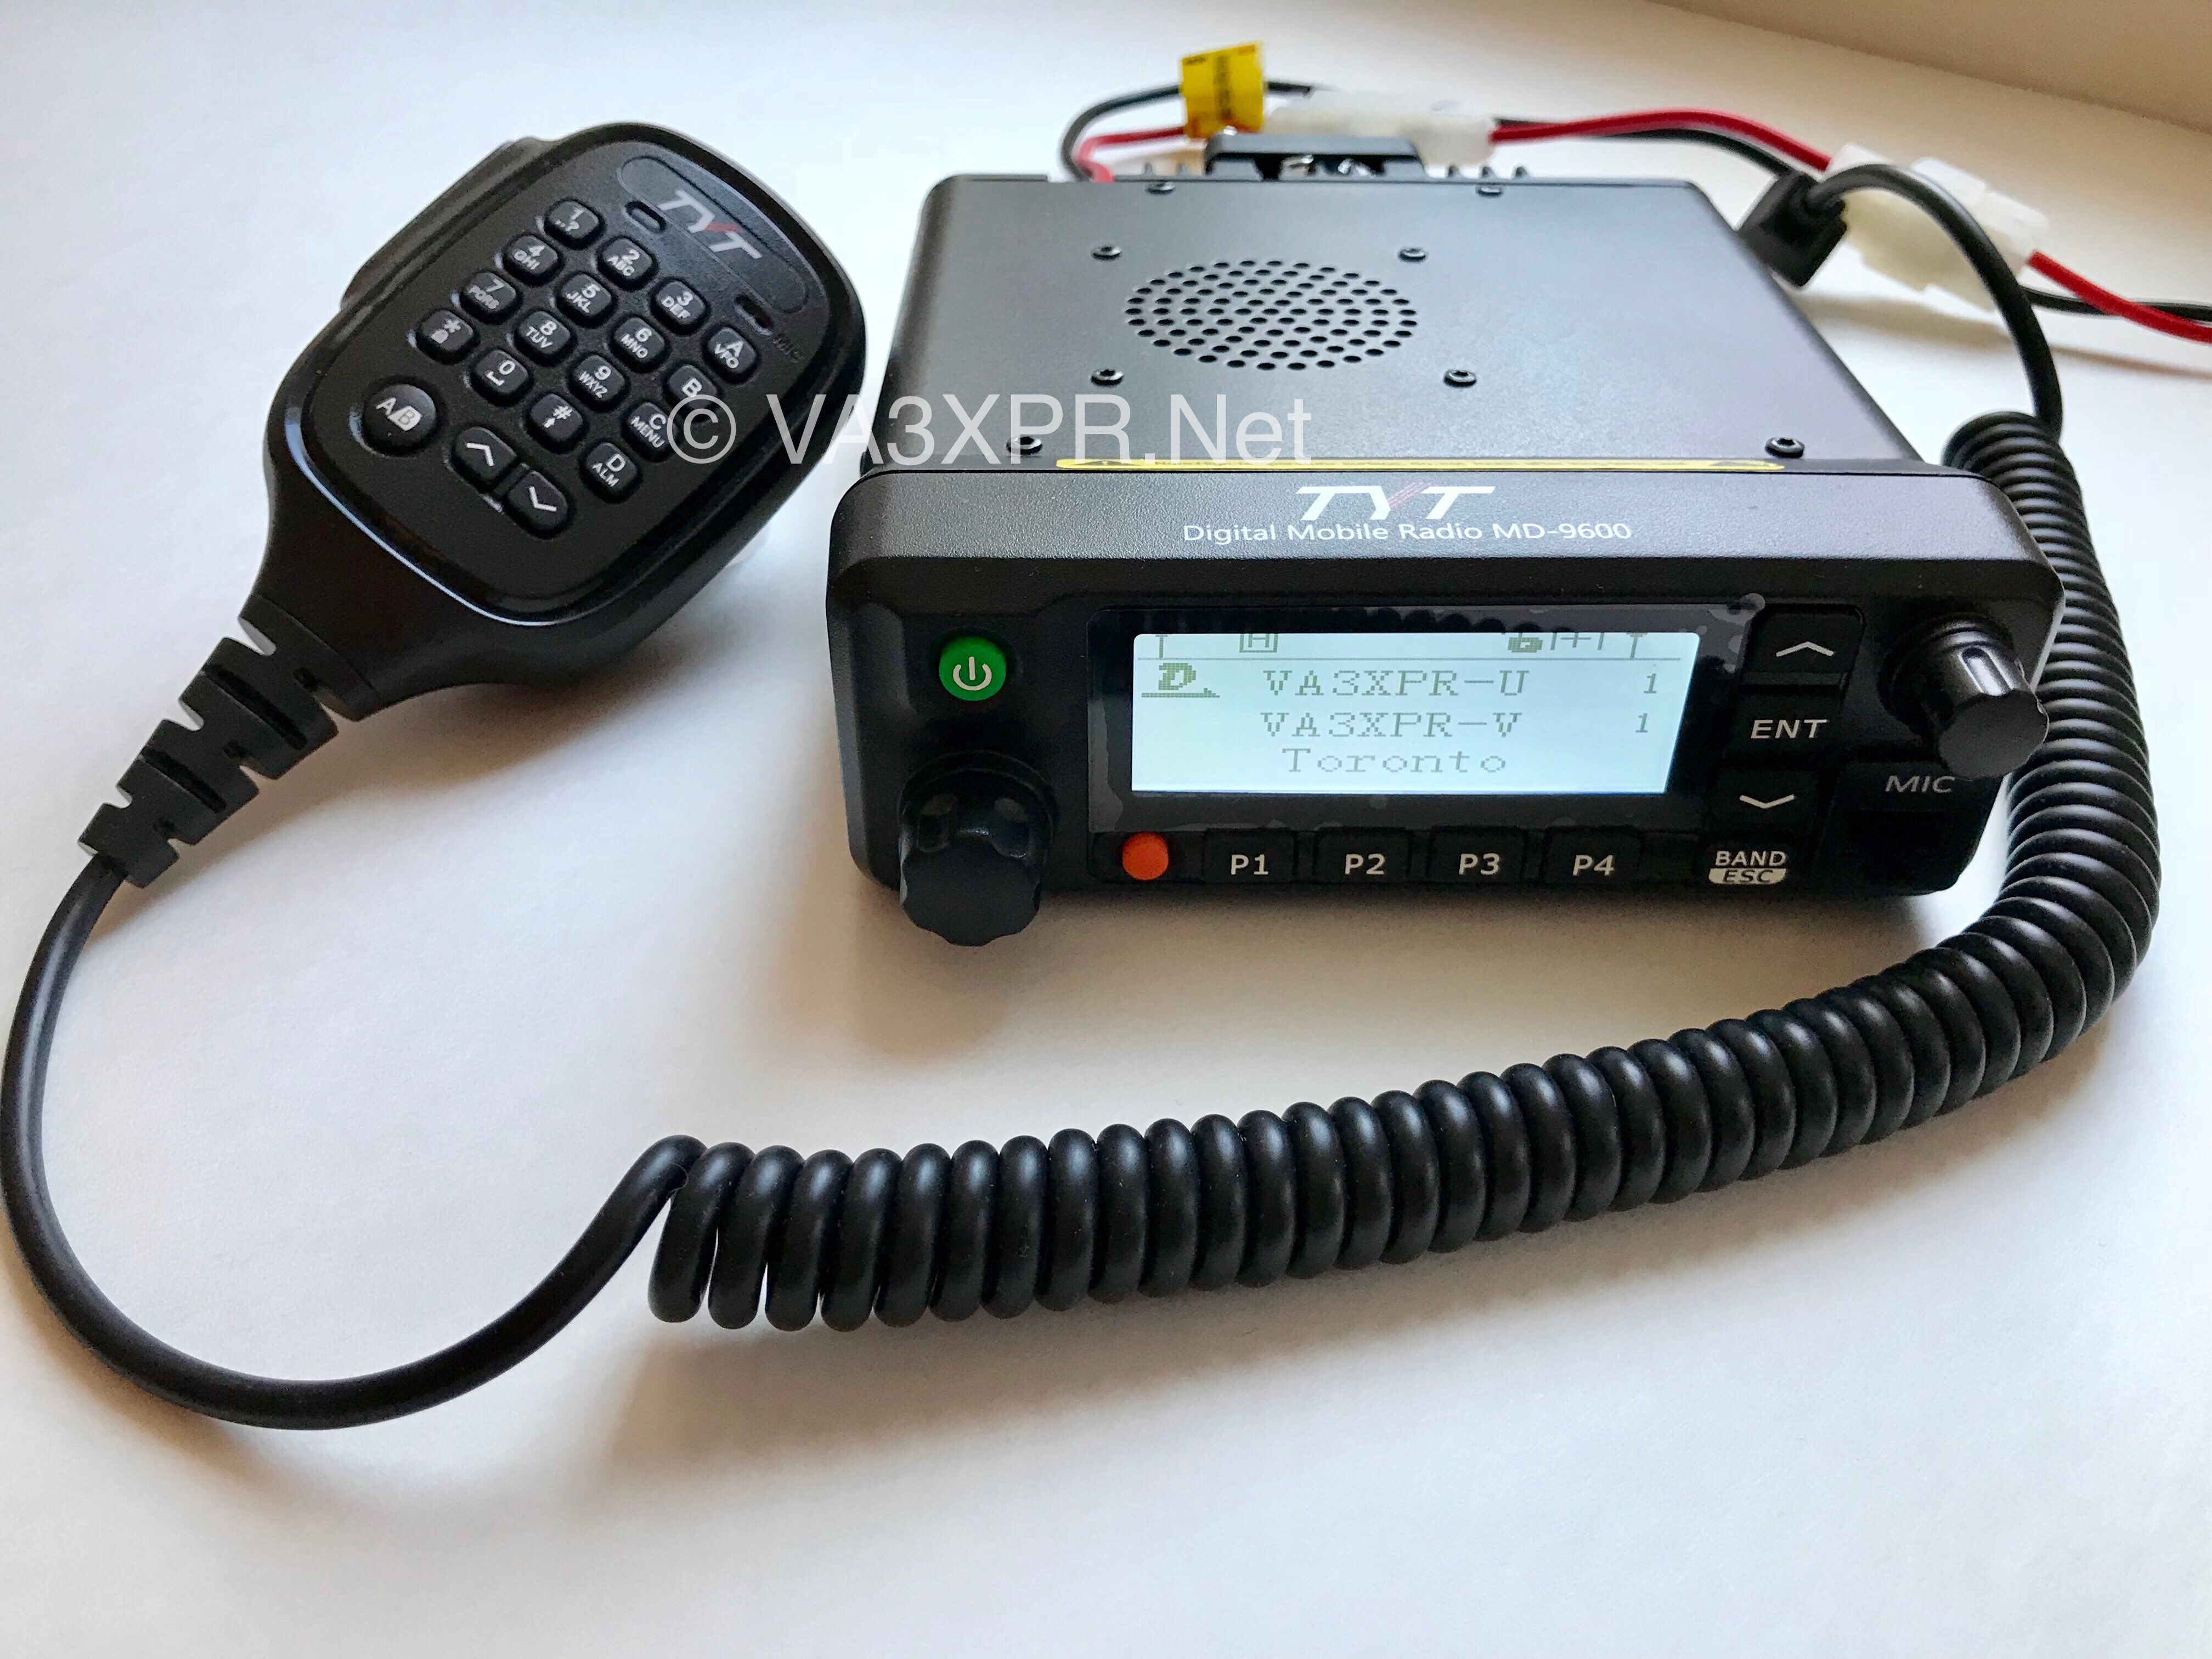 hight resolution of tyt md 9600 review va3xpr